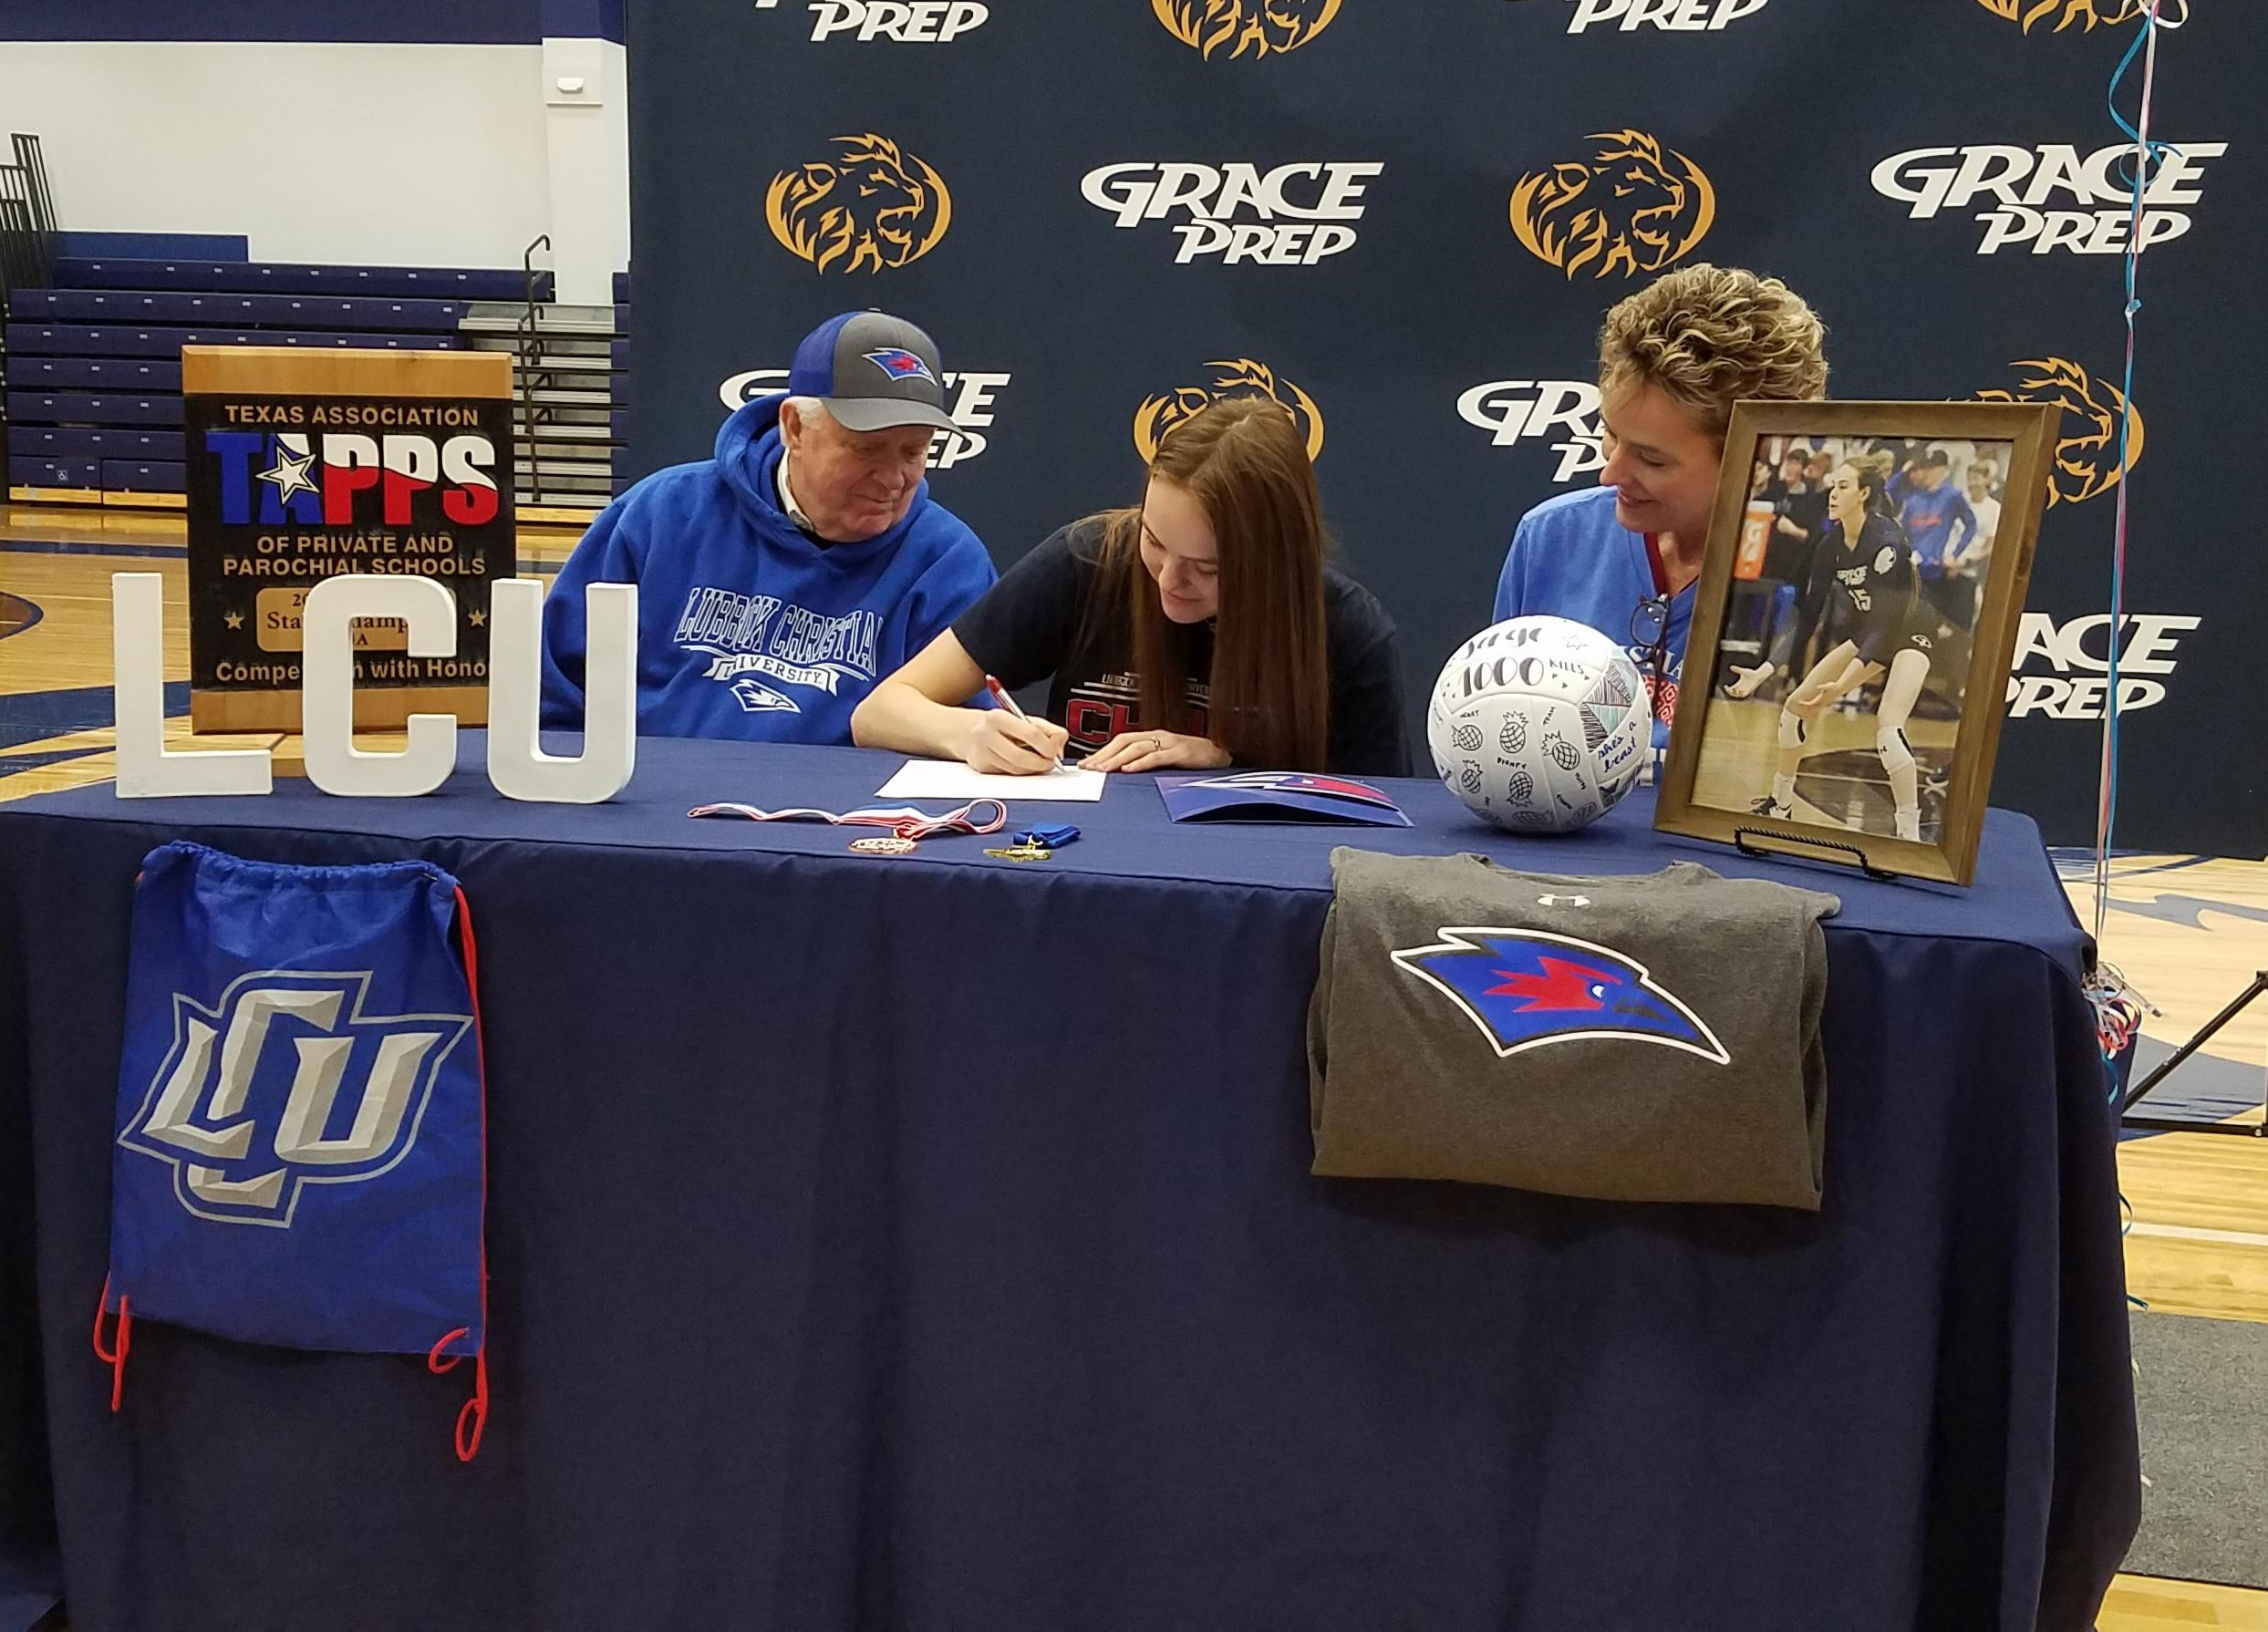 Post Signs with Lubbock Christian University